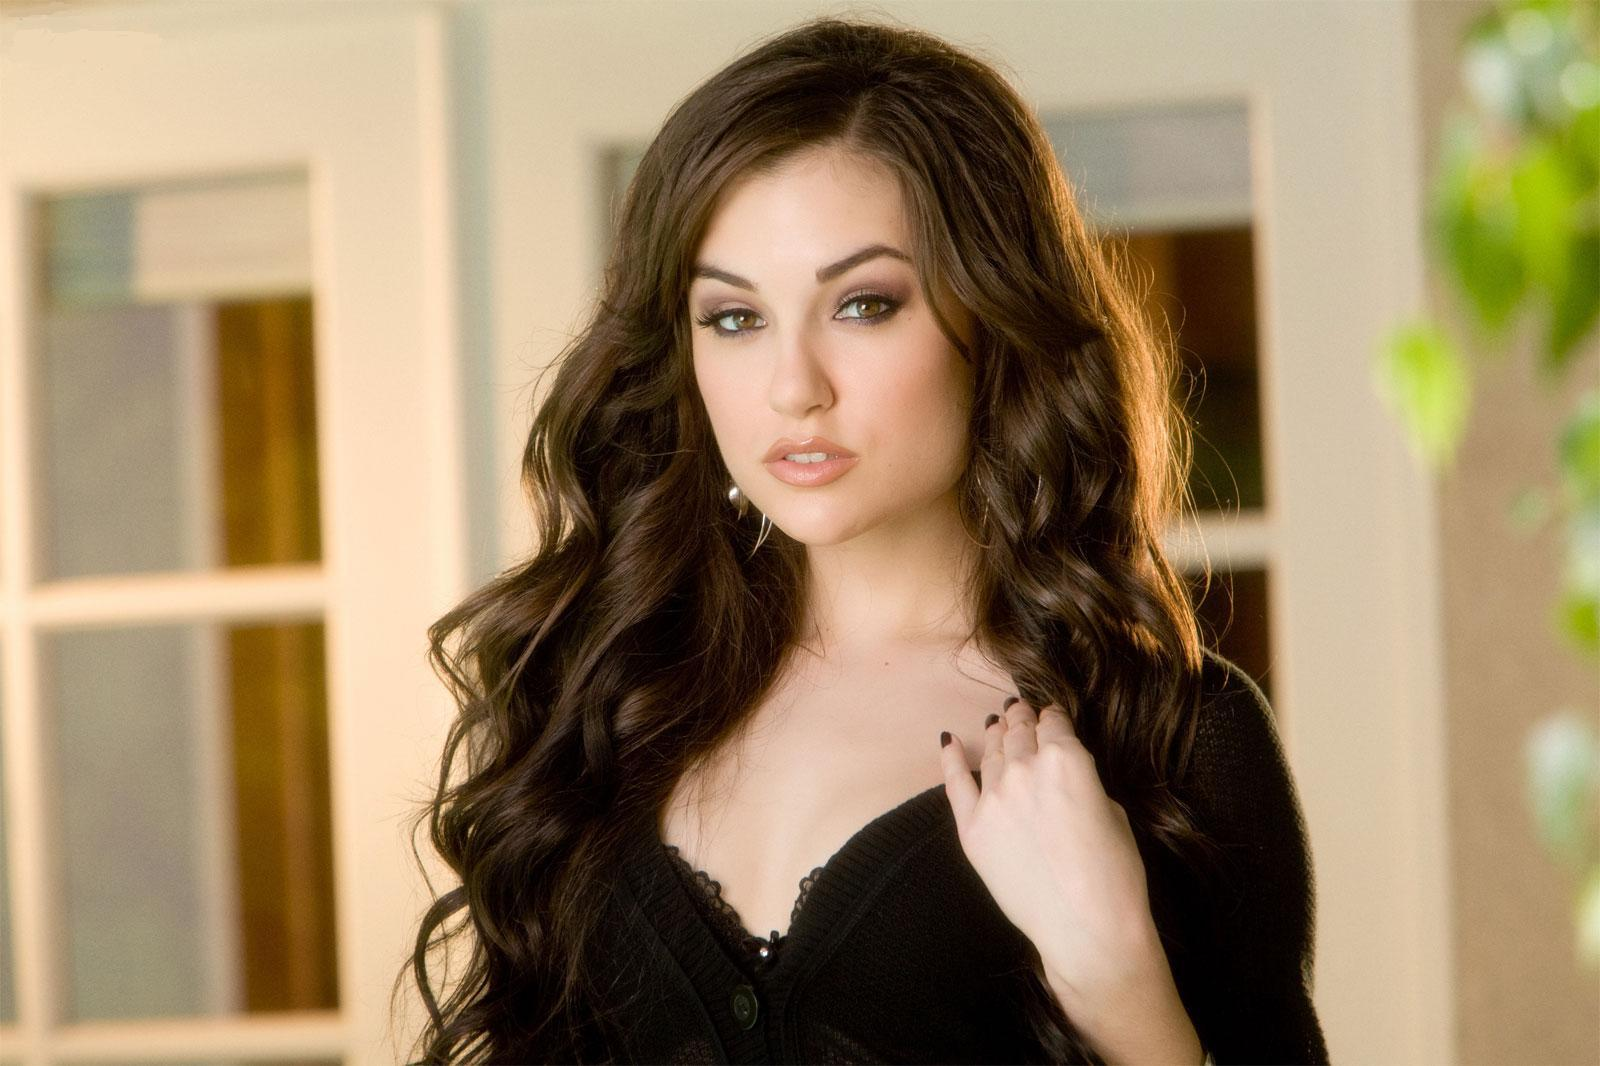 Sasha Grey Wallpaper For Computer